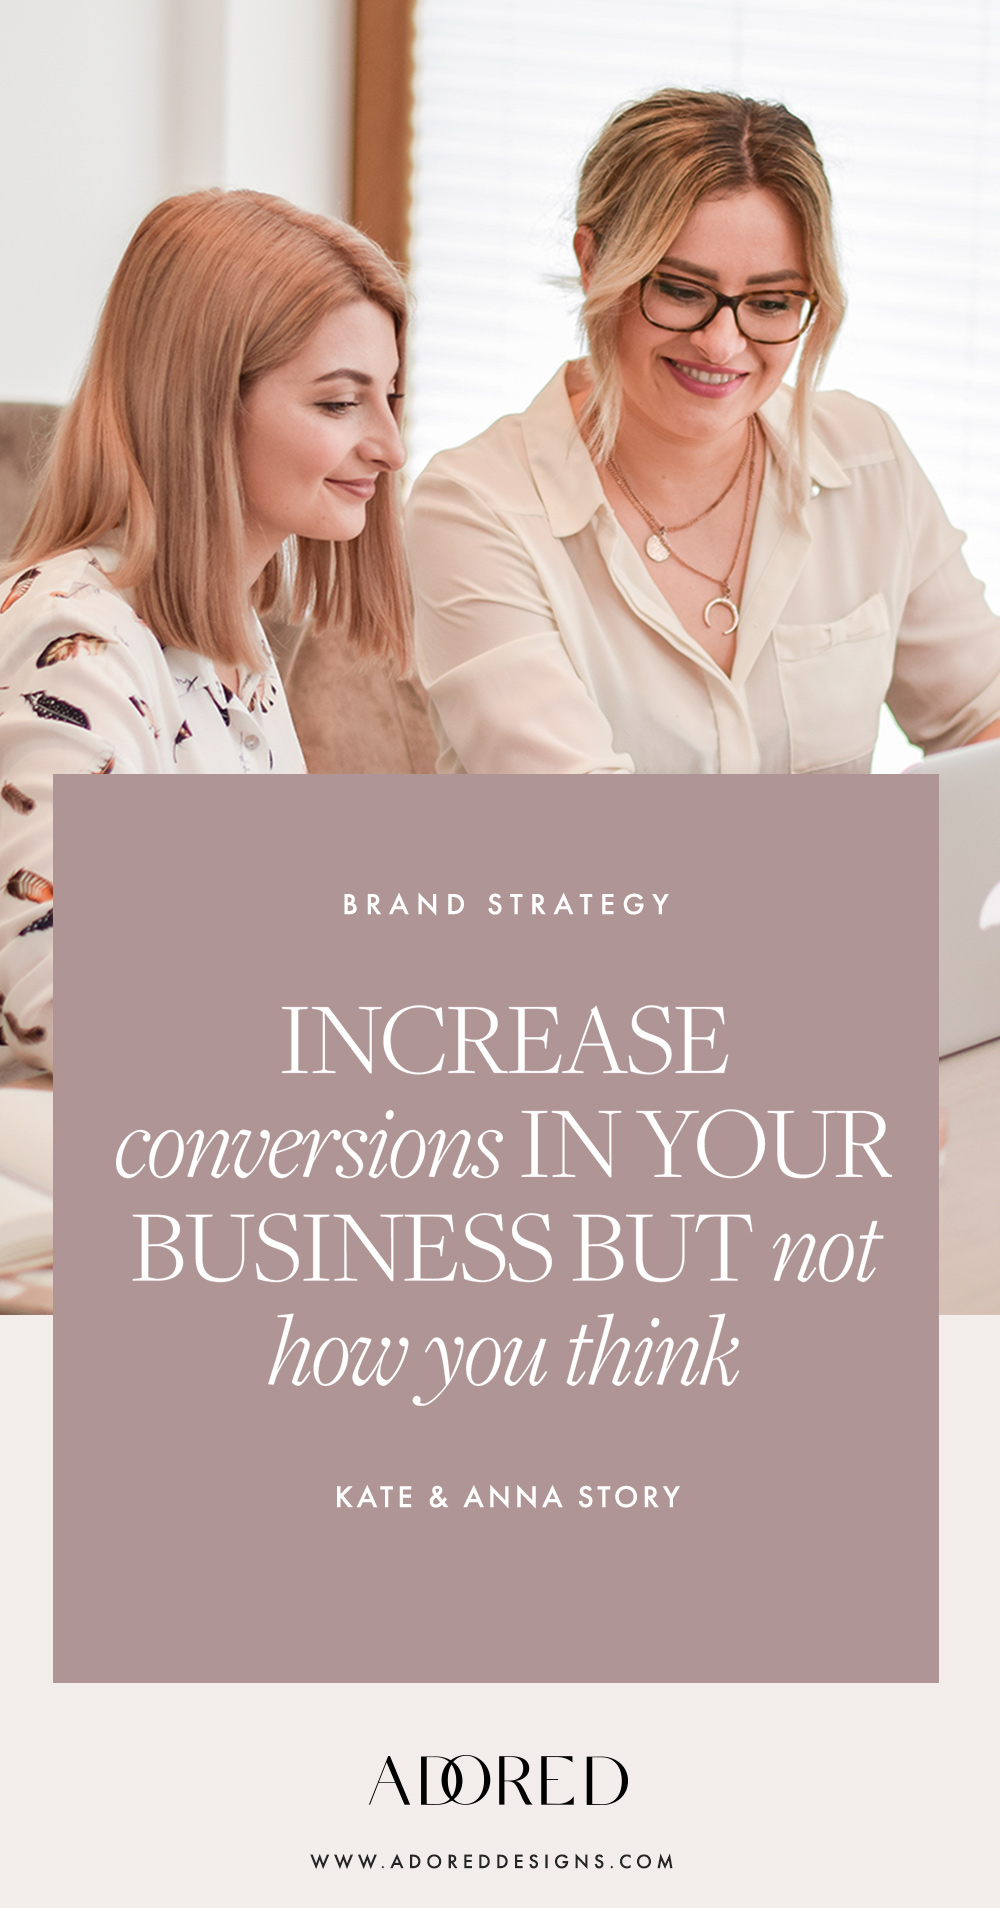 Increase your conversions but not how you think! Kate & Anna Story